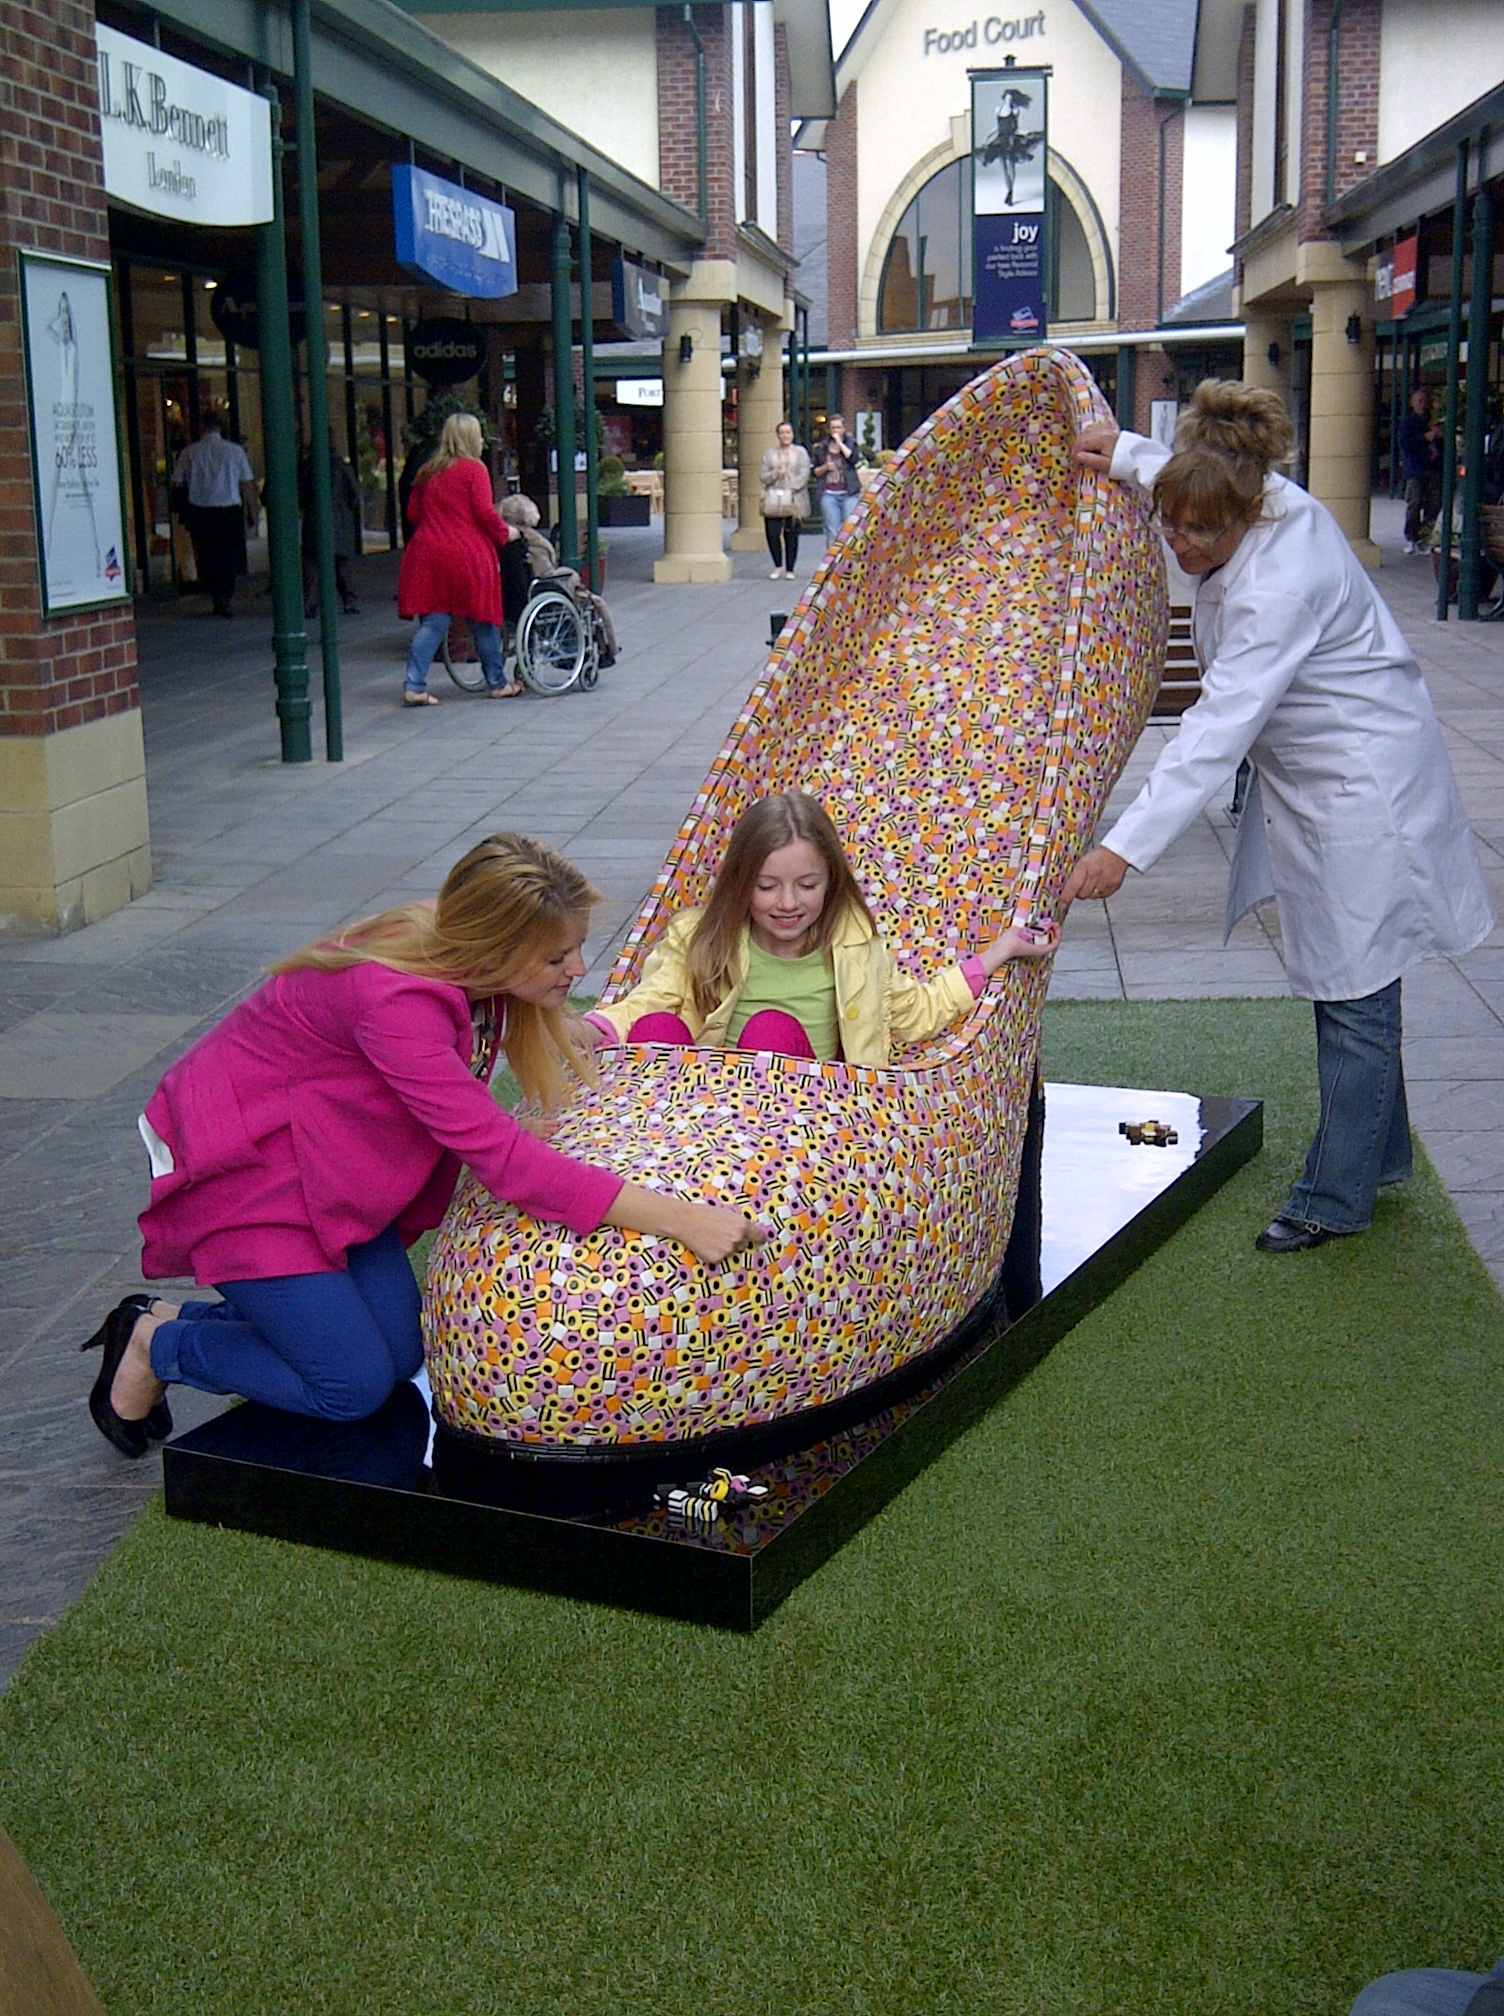 A child plays in a giant shoe made out of liqourice allsorts as shoppers watch on